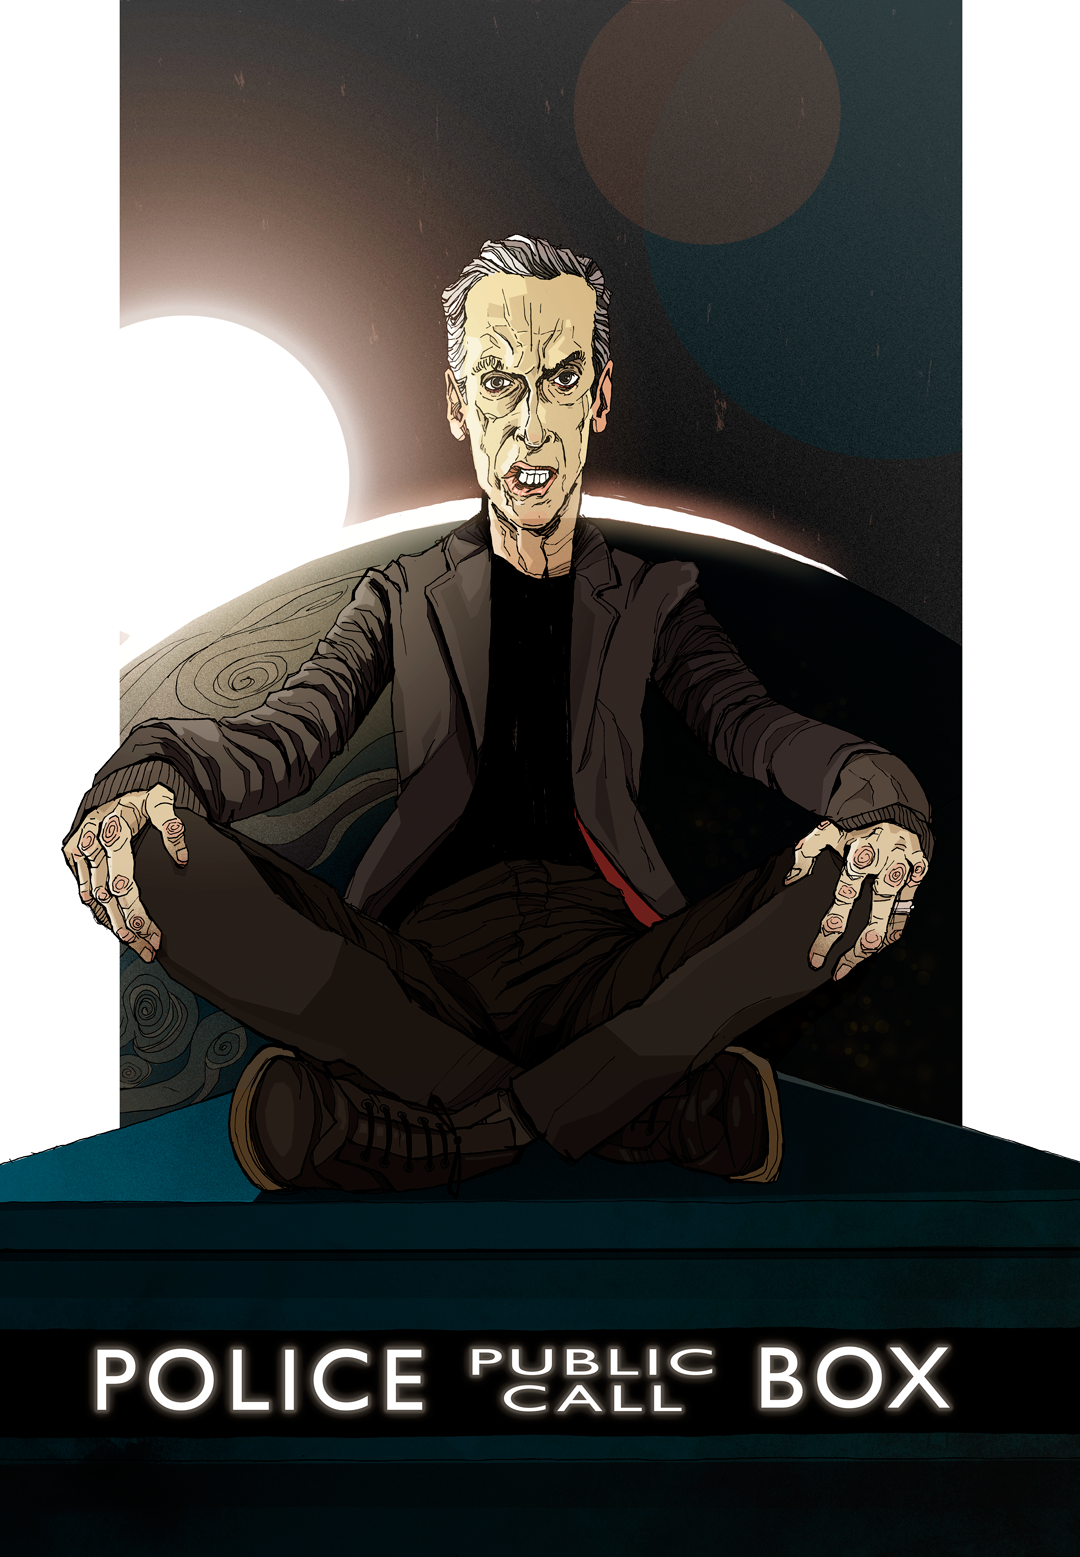 Doctor Who Twelfth Doctor Artwork